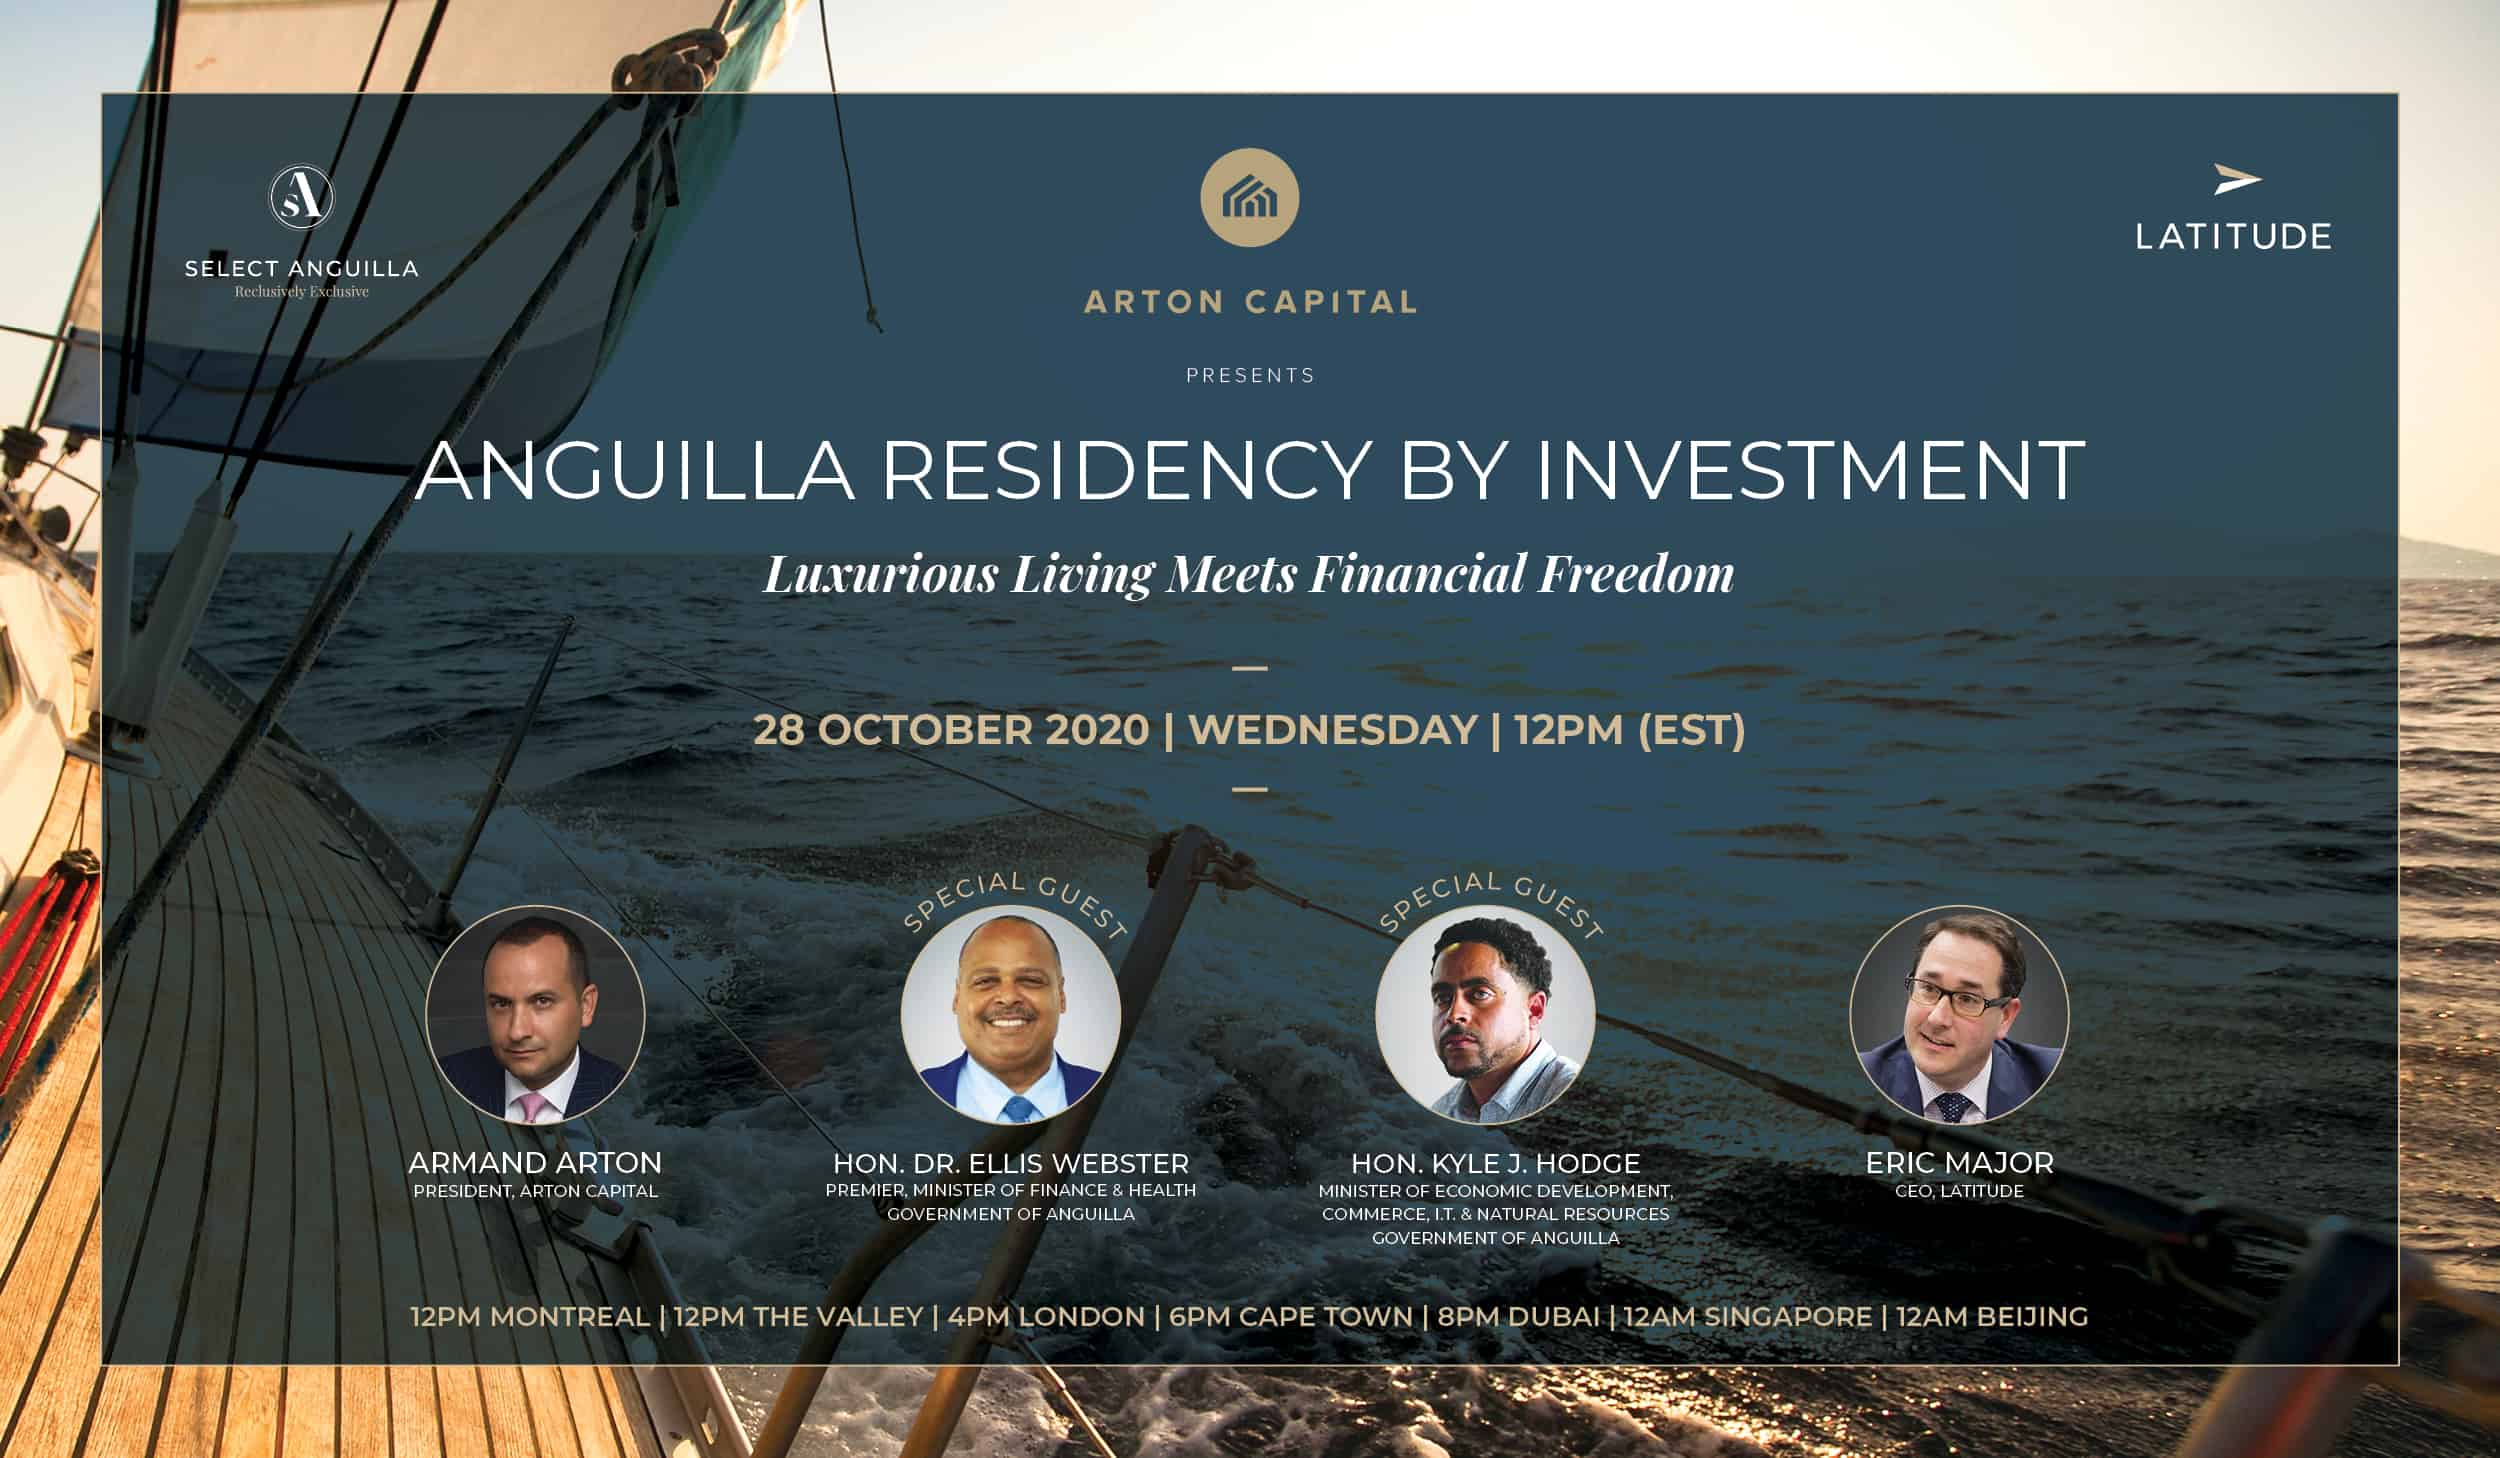 Anguilla Residency by Investment